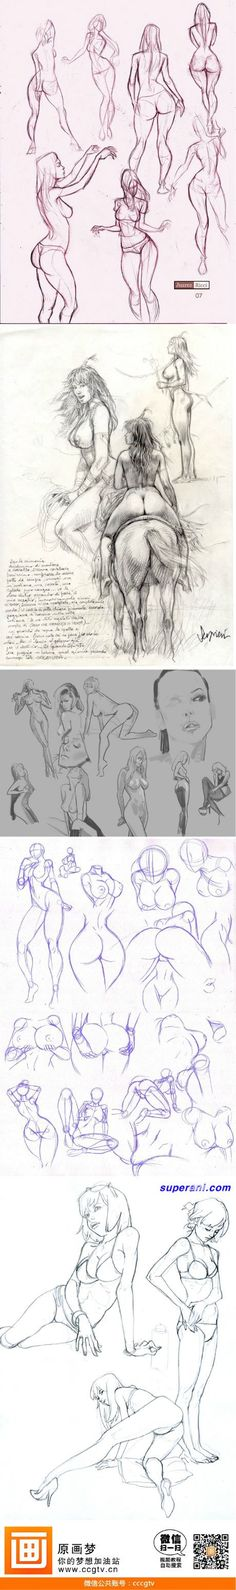 I don't exactly like this kind of art tutorial, but if it's useful for anyone, it's here